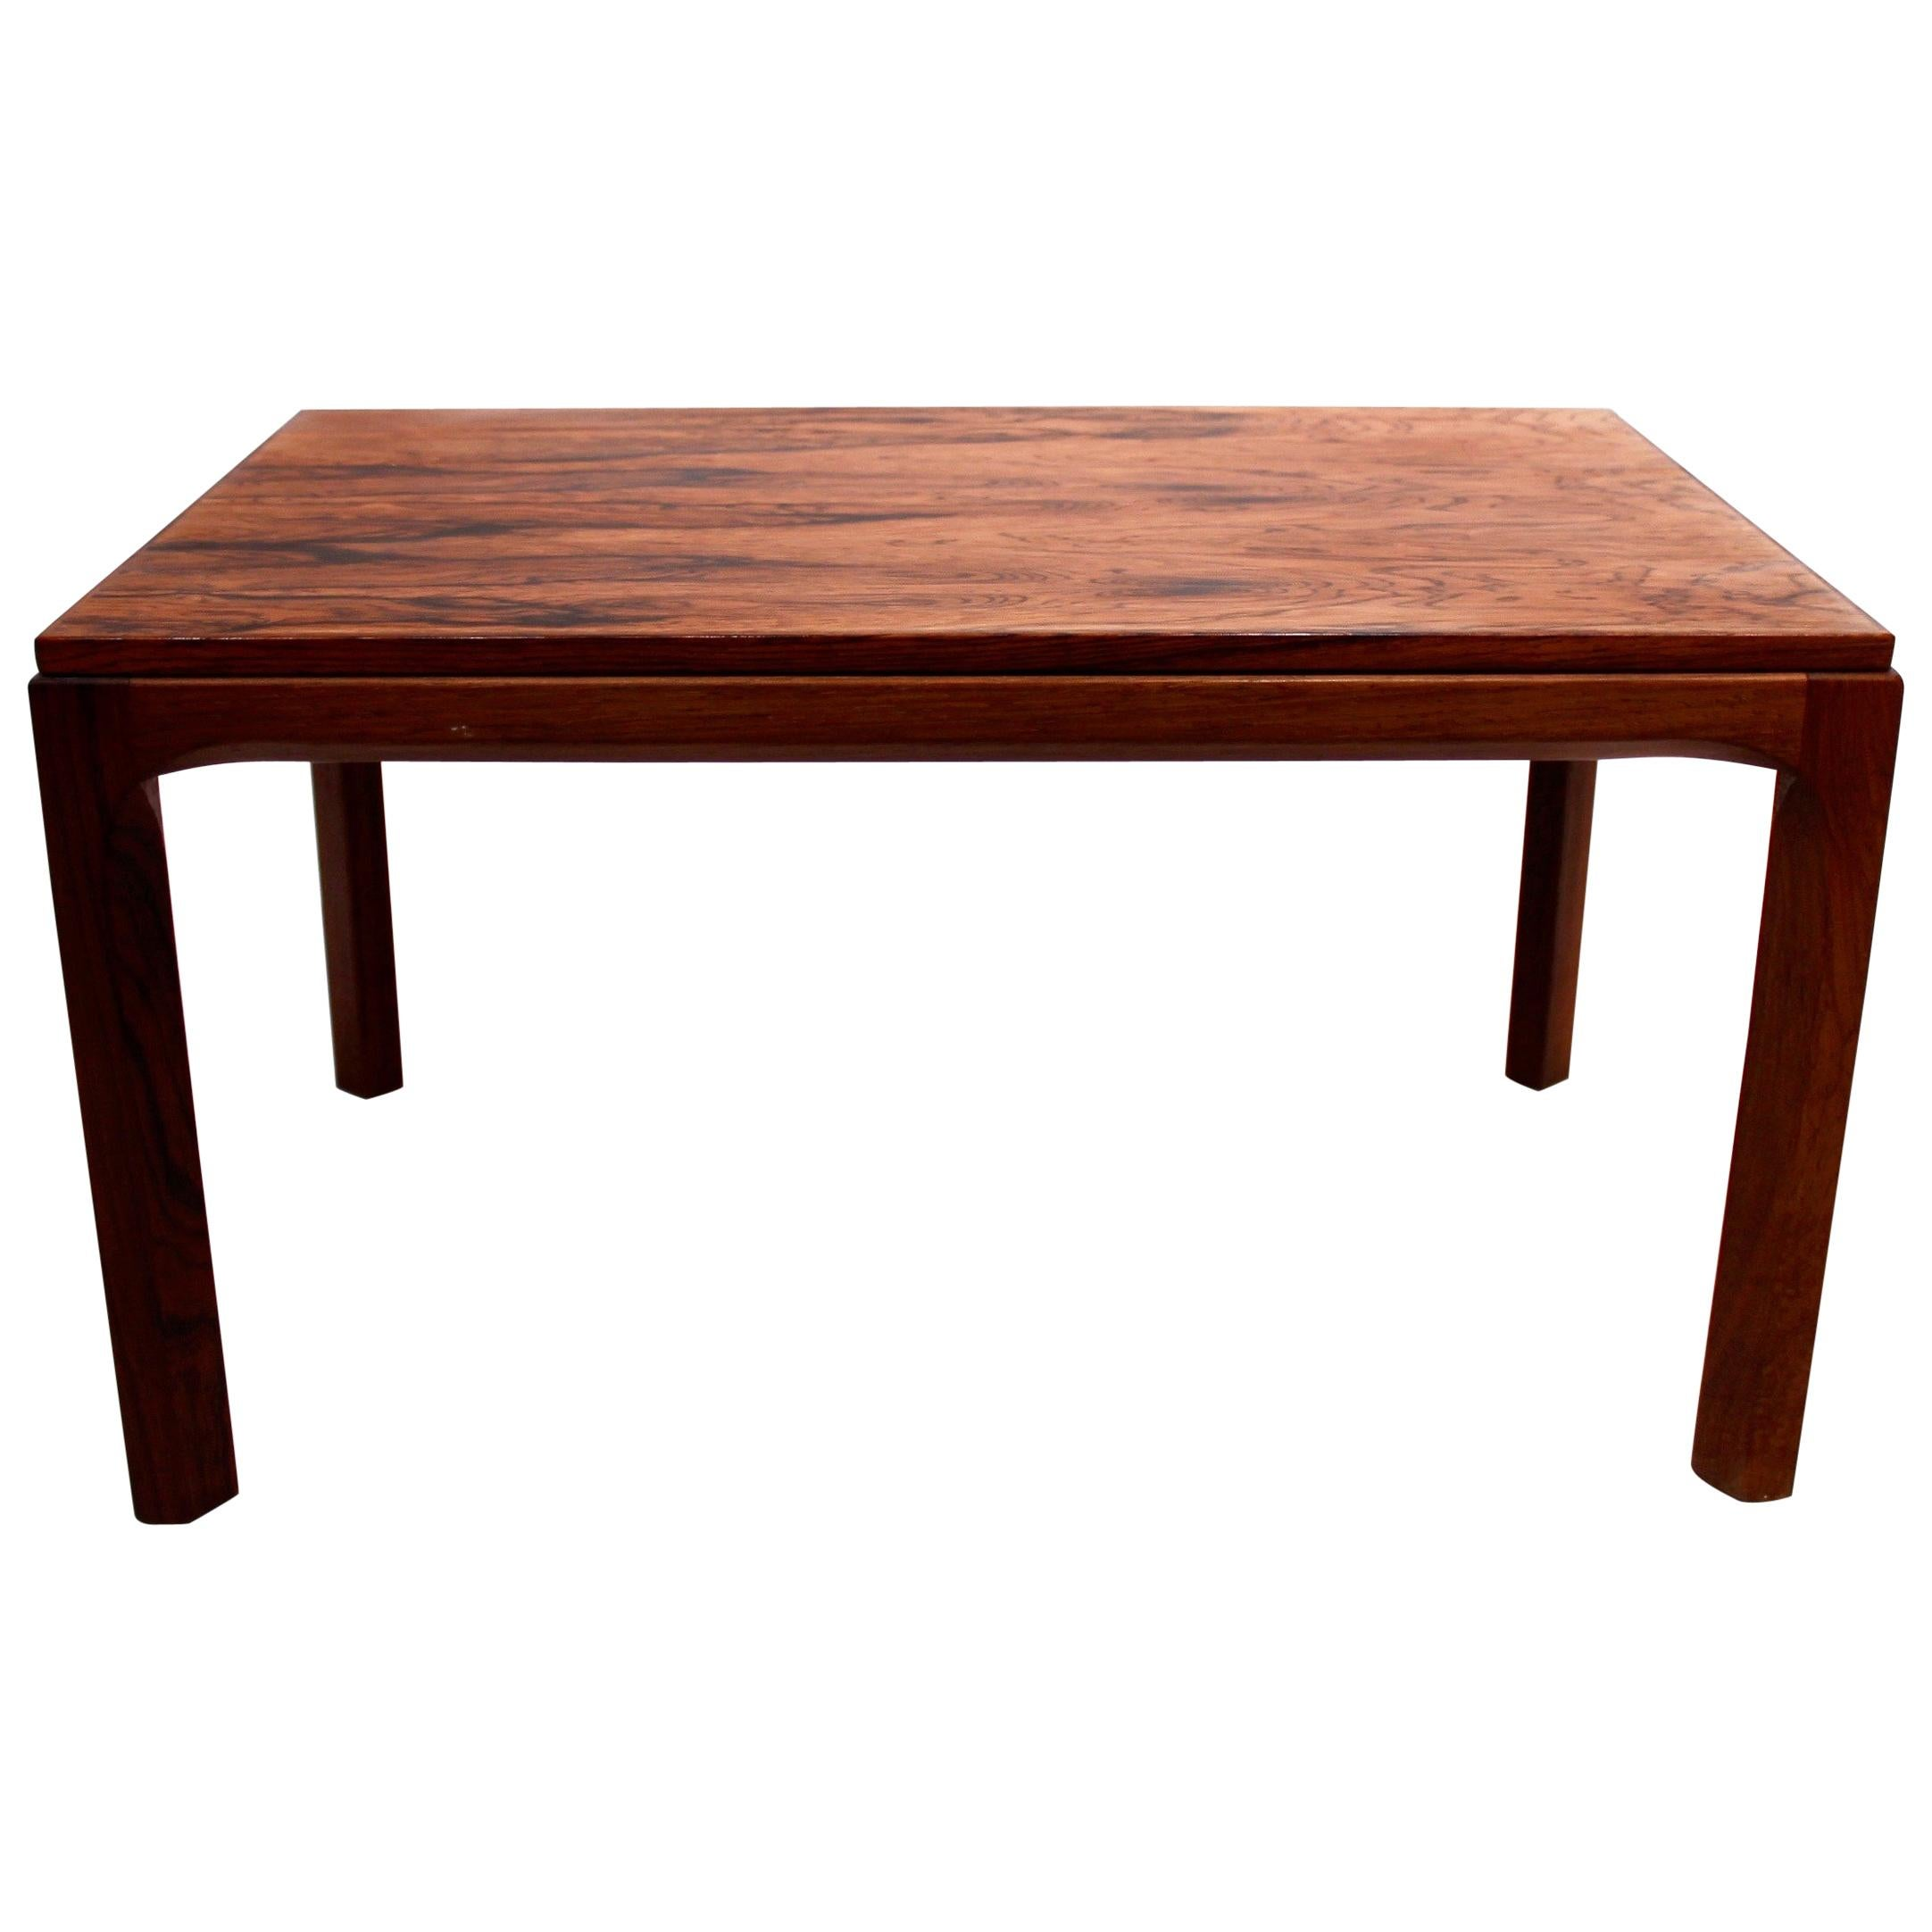 Side Table of Rosewood by Aksel Kjersgaard and Odder, 1960s